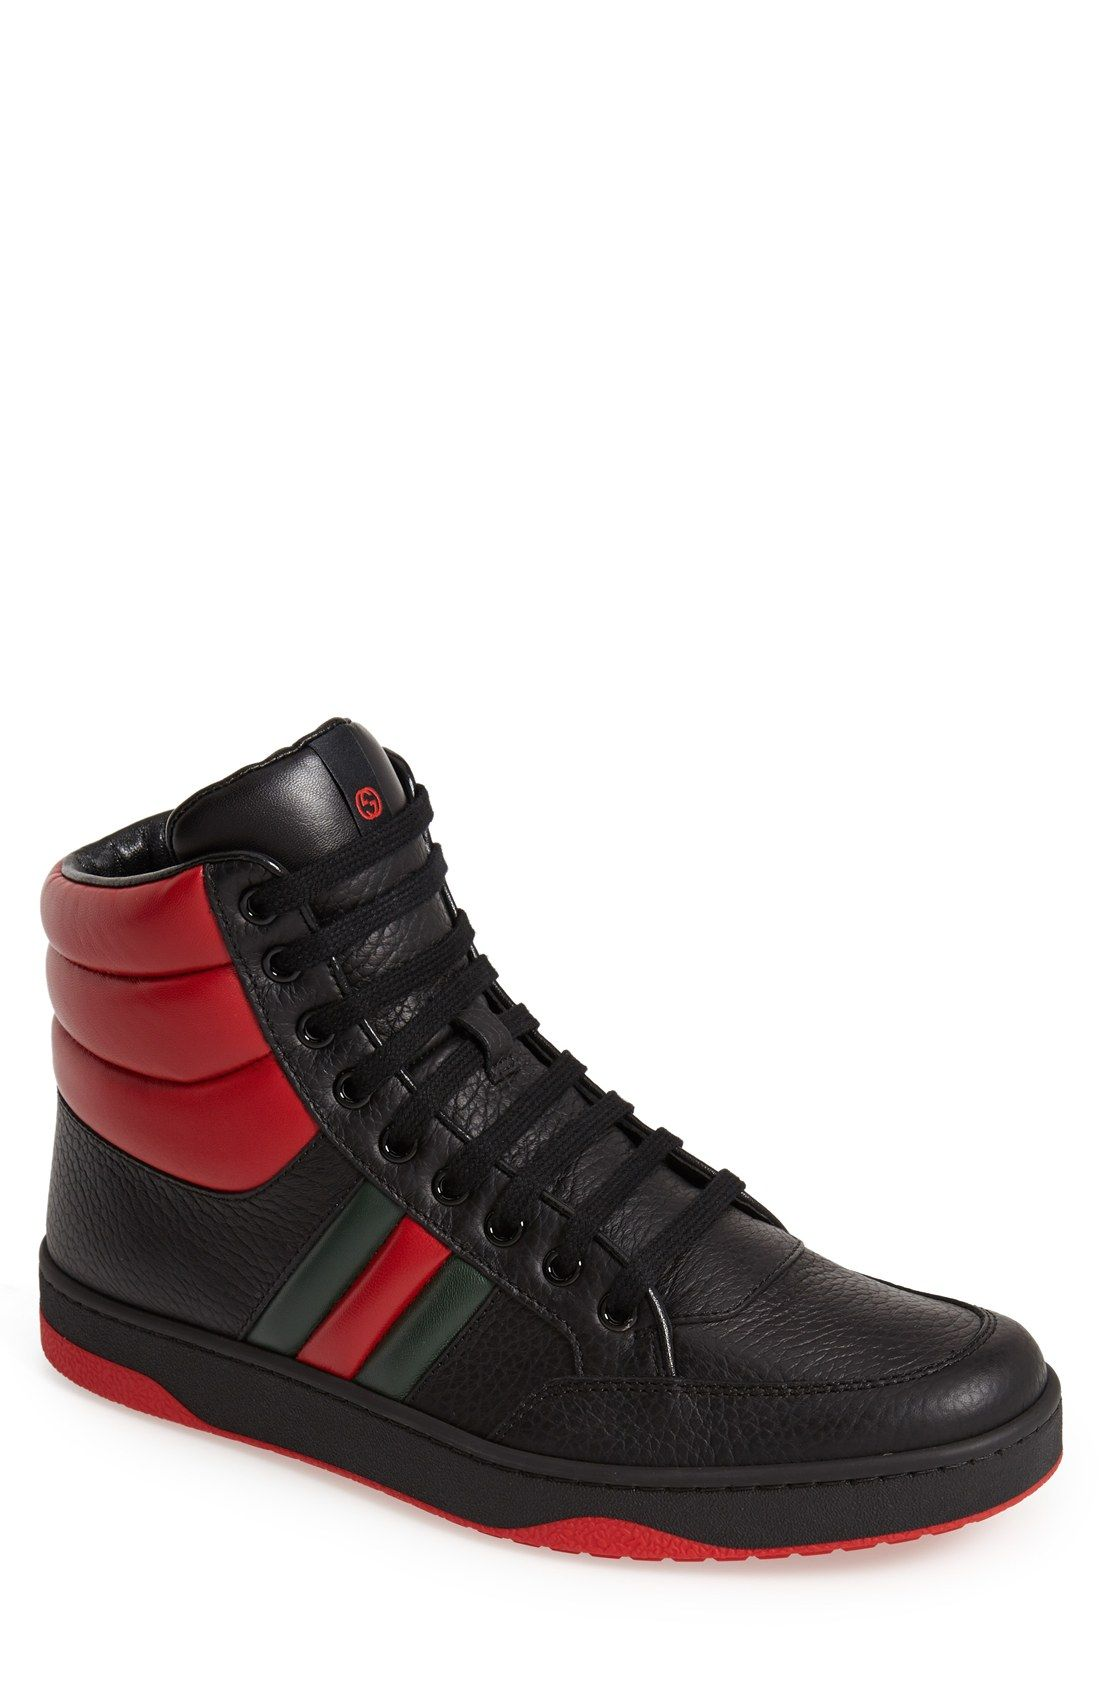 66119780c75 Gucci  Ronnie  High-Top Sneaker.